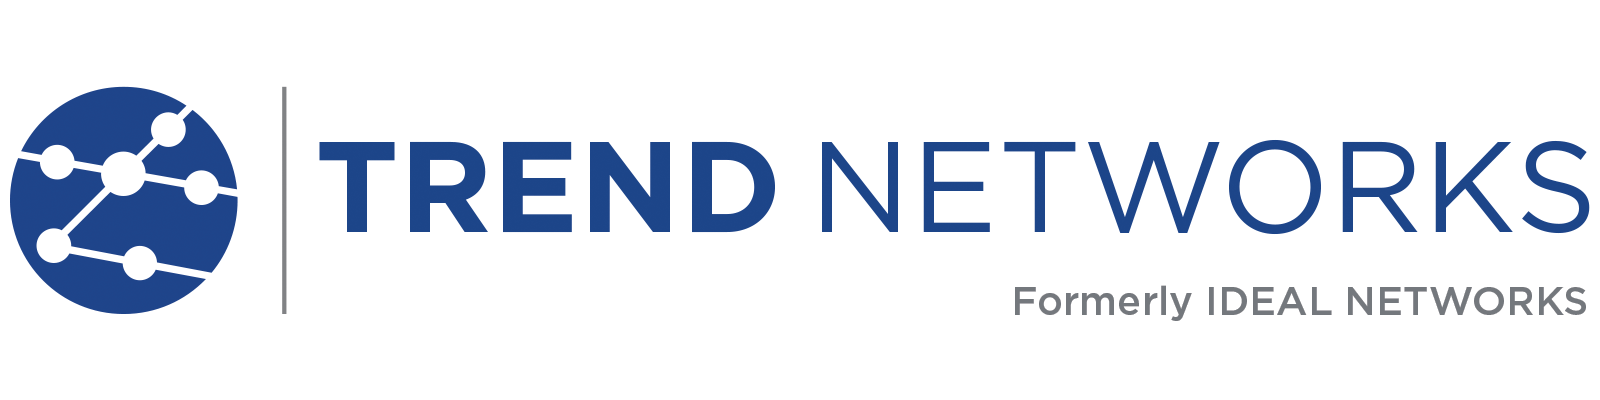 Trend-networks-logo-antes-ideal-networks